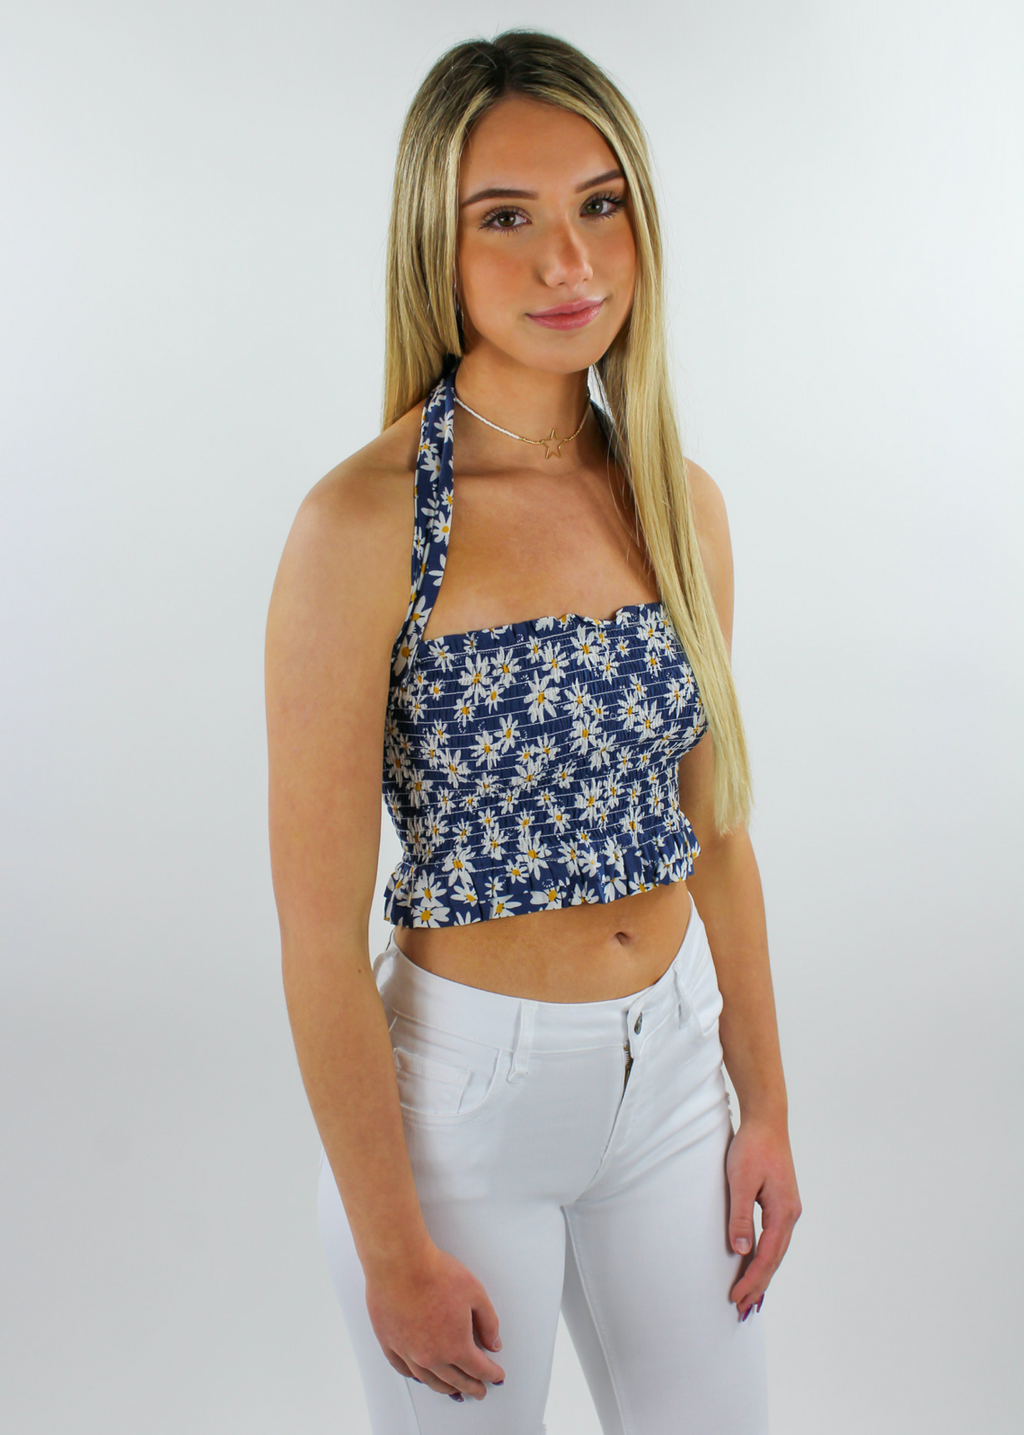 Soak Up The Sun Top ★ Navy - Rock N Rags